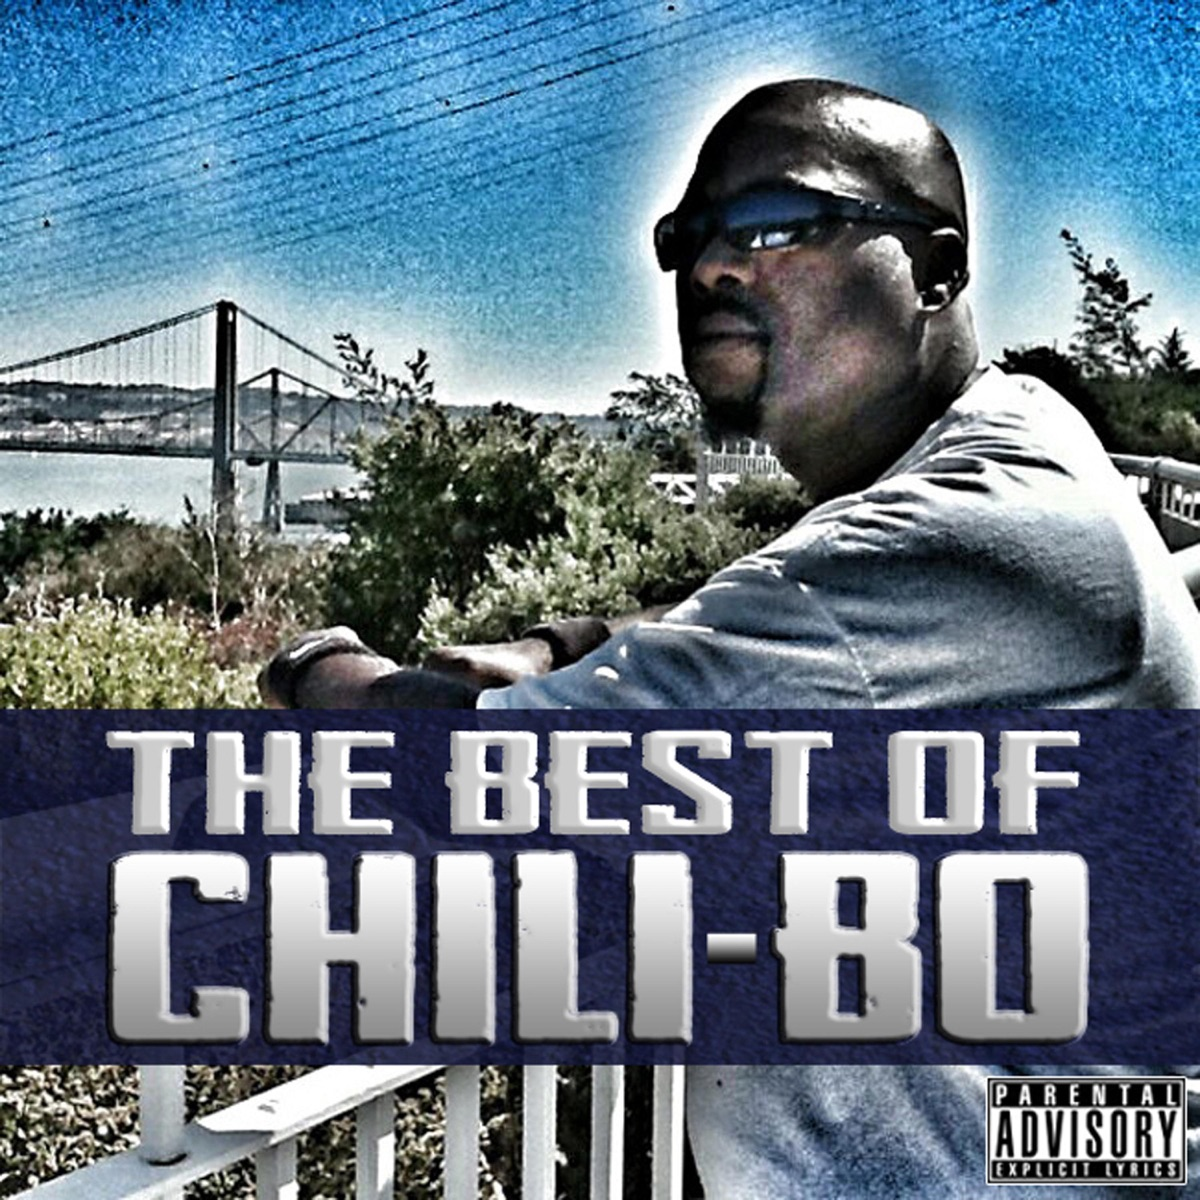 The Best of Chili-Bo Chili-Bo CD cover